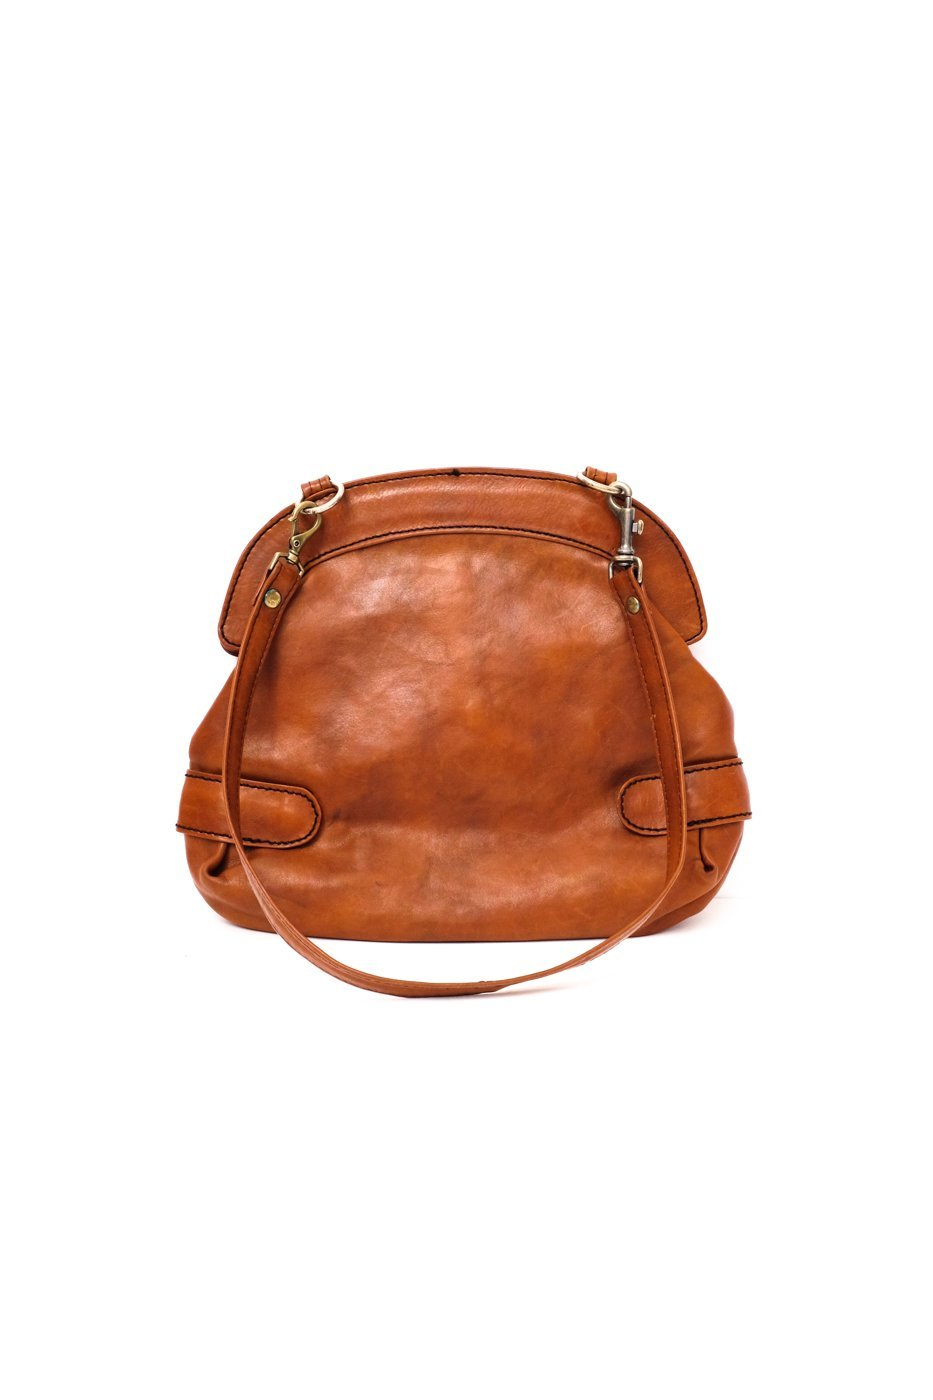 0362_MISTRAL VINTAGE LEATHER BAG